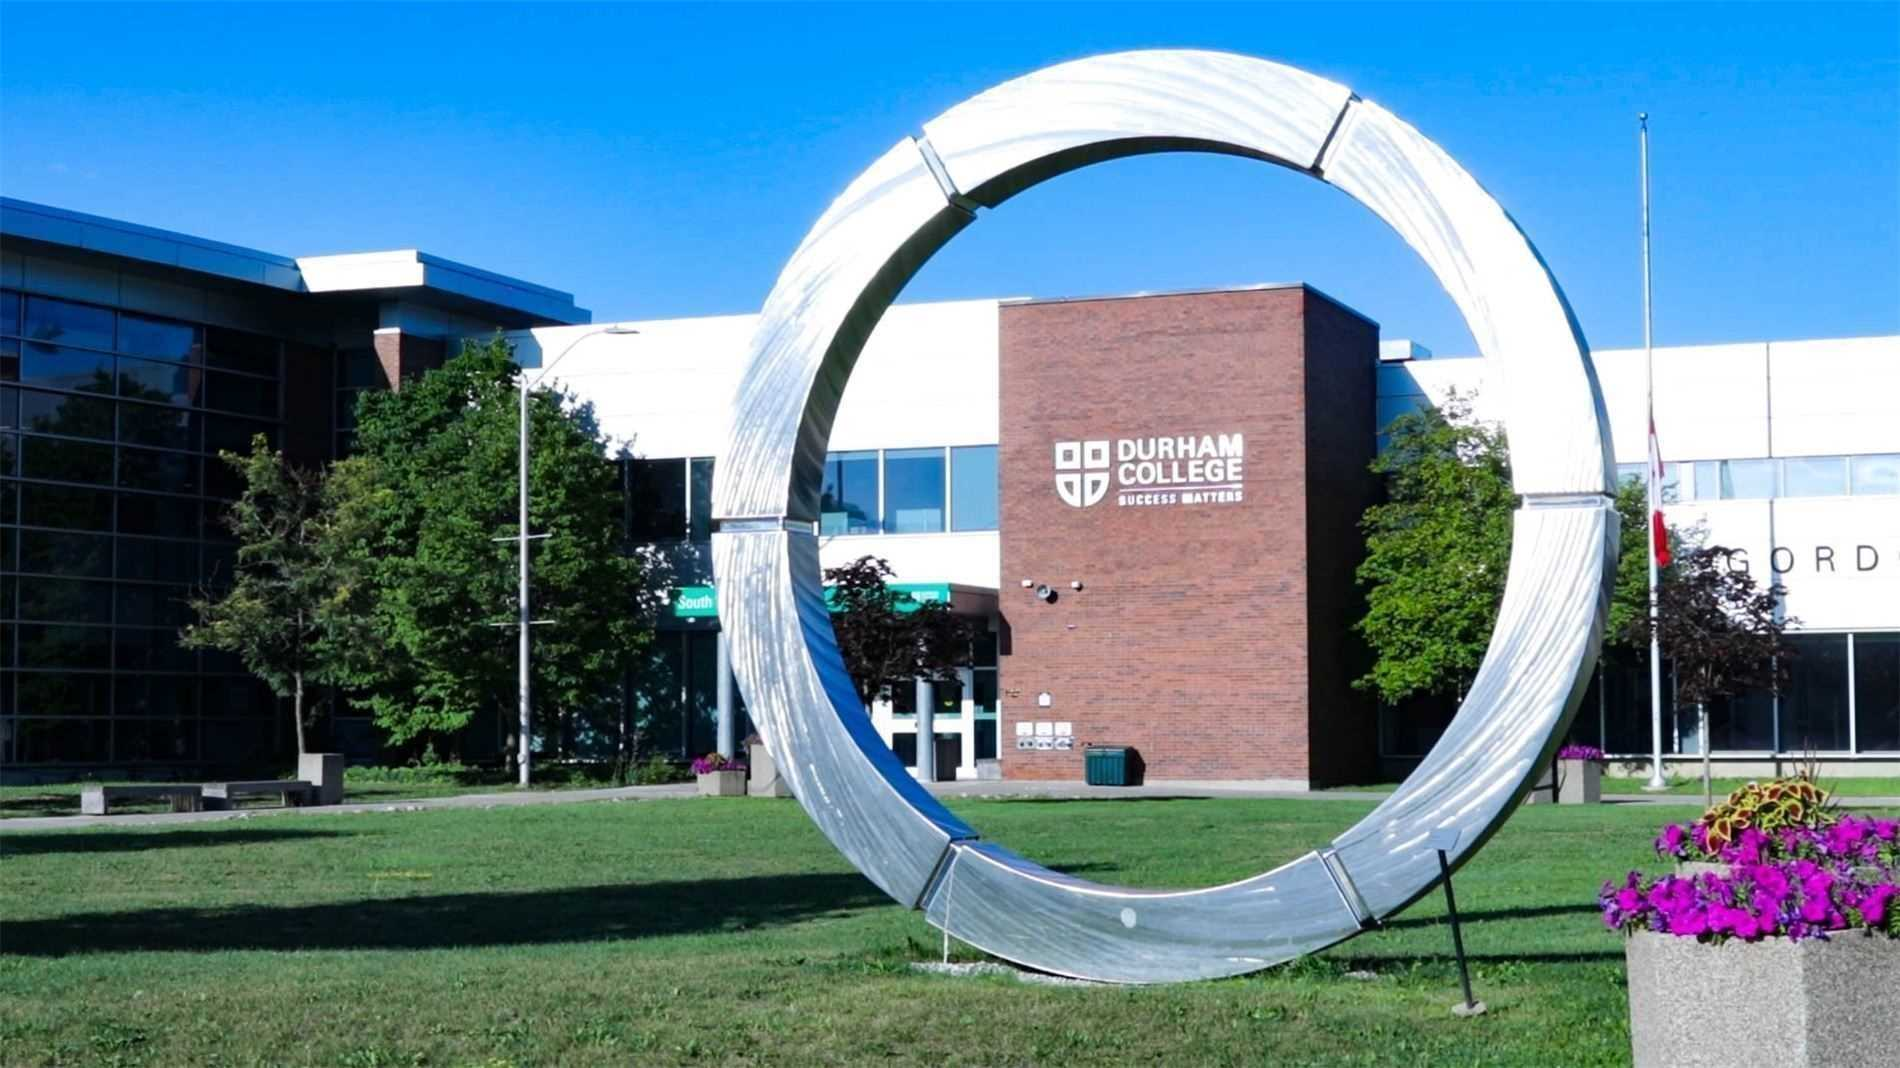 An Amazing Location For Students. Few Minutes Walking Distance From Uoit & Durham College.Stacked Townhouse, Laminate Flooring Throughout. 3 Bedrooms,3 Bedrooms,All Bedrooms Have Full Ensuite Washroom.Comes Fully Furnished. $800 Per Room. Modern Kitchen With Granite Counters, Centre Island And Breakfast Bar. Access To Amenities  With Concierge, Gym, Meeting Rooms & More. Great Location Close To Hwy 407, Transit, Shopping, Restaurants, Etc.